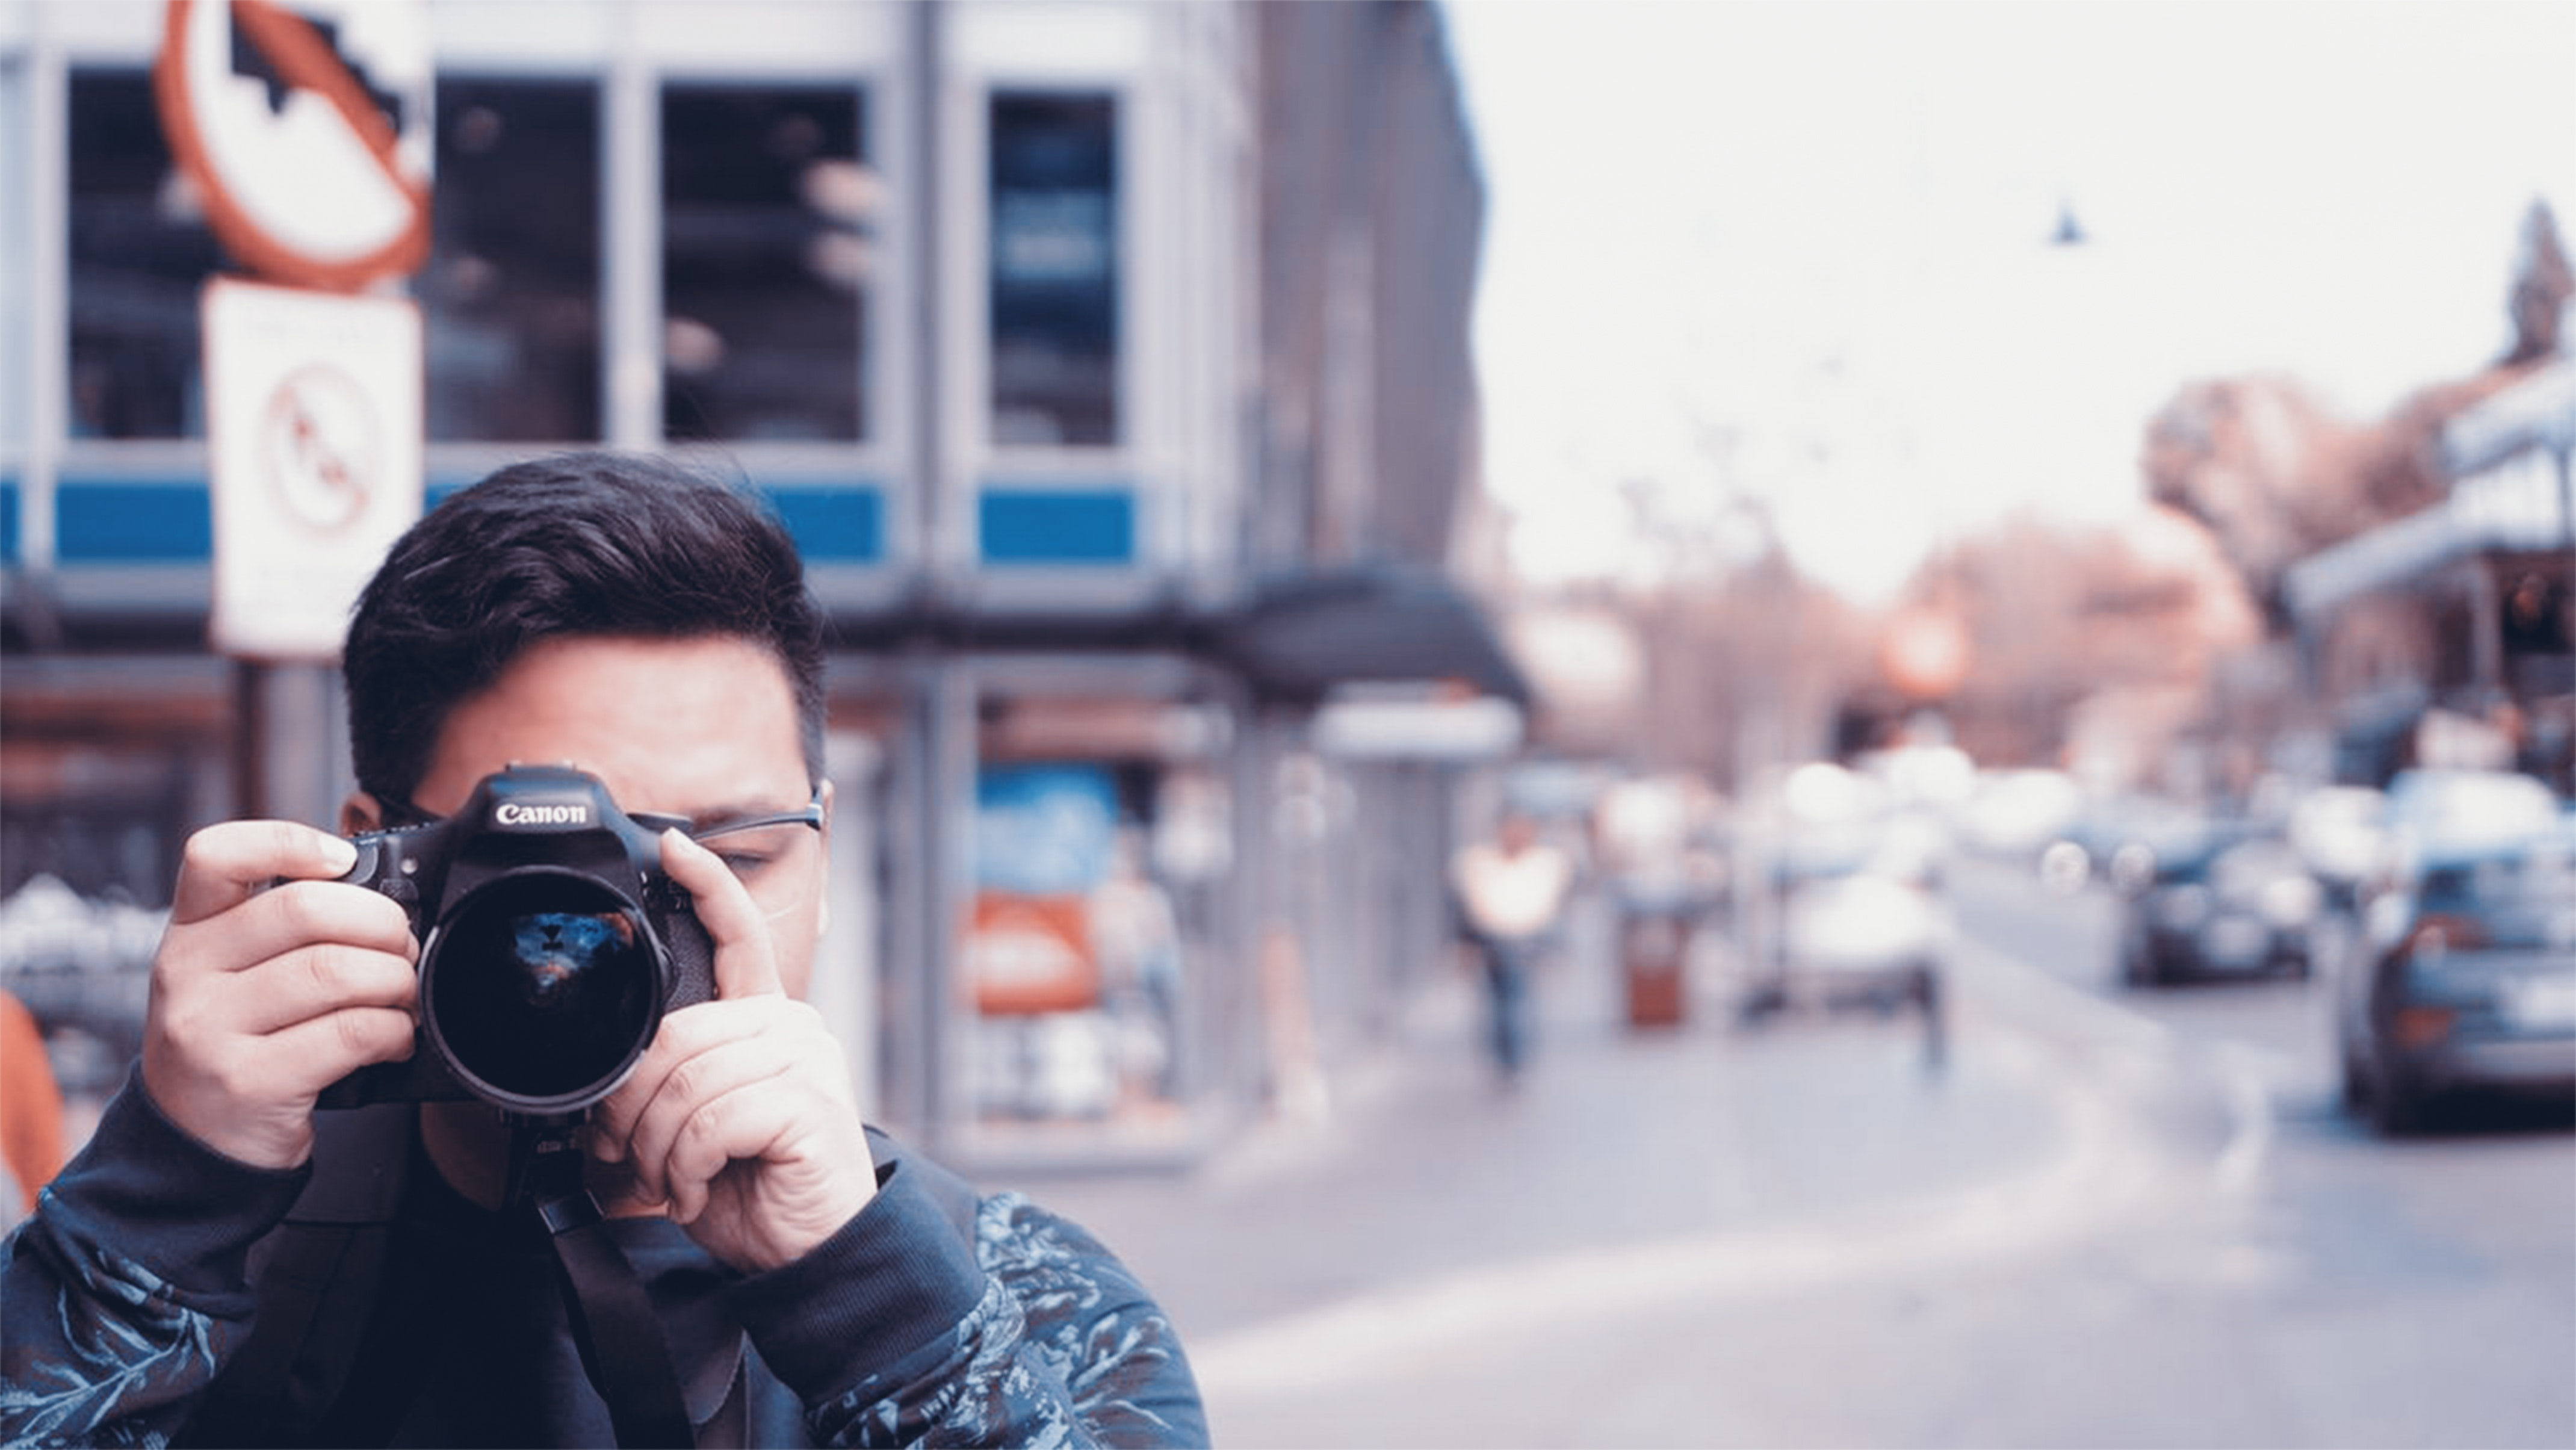 Man holding a camera on busy street photo